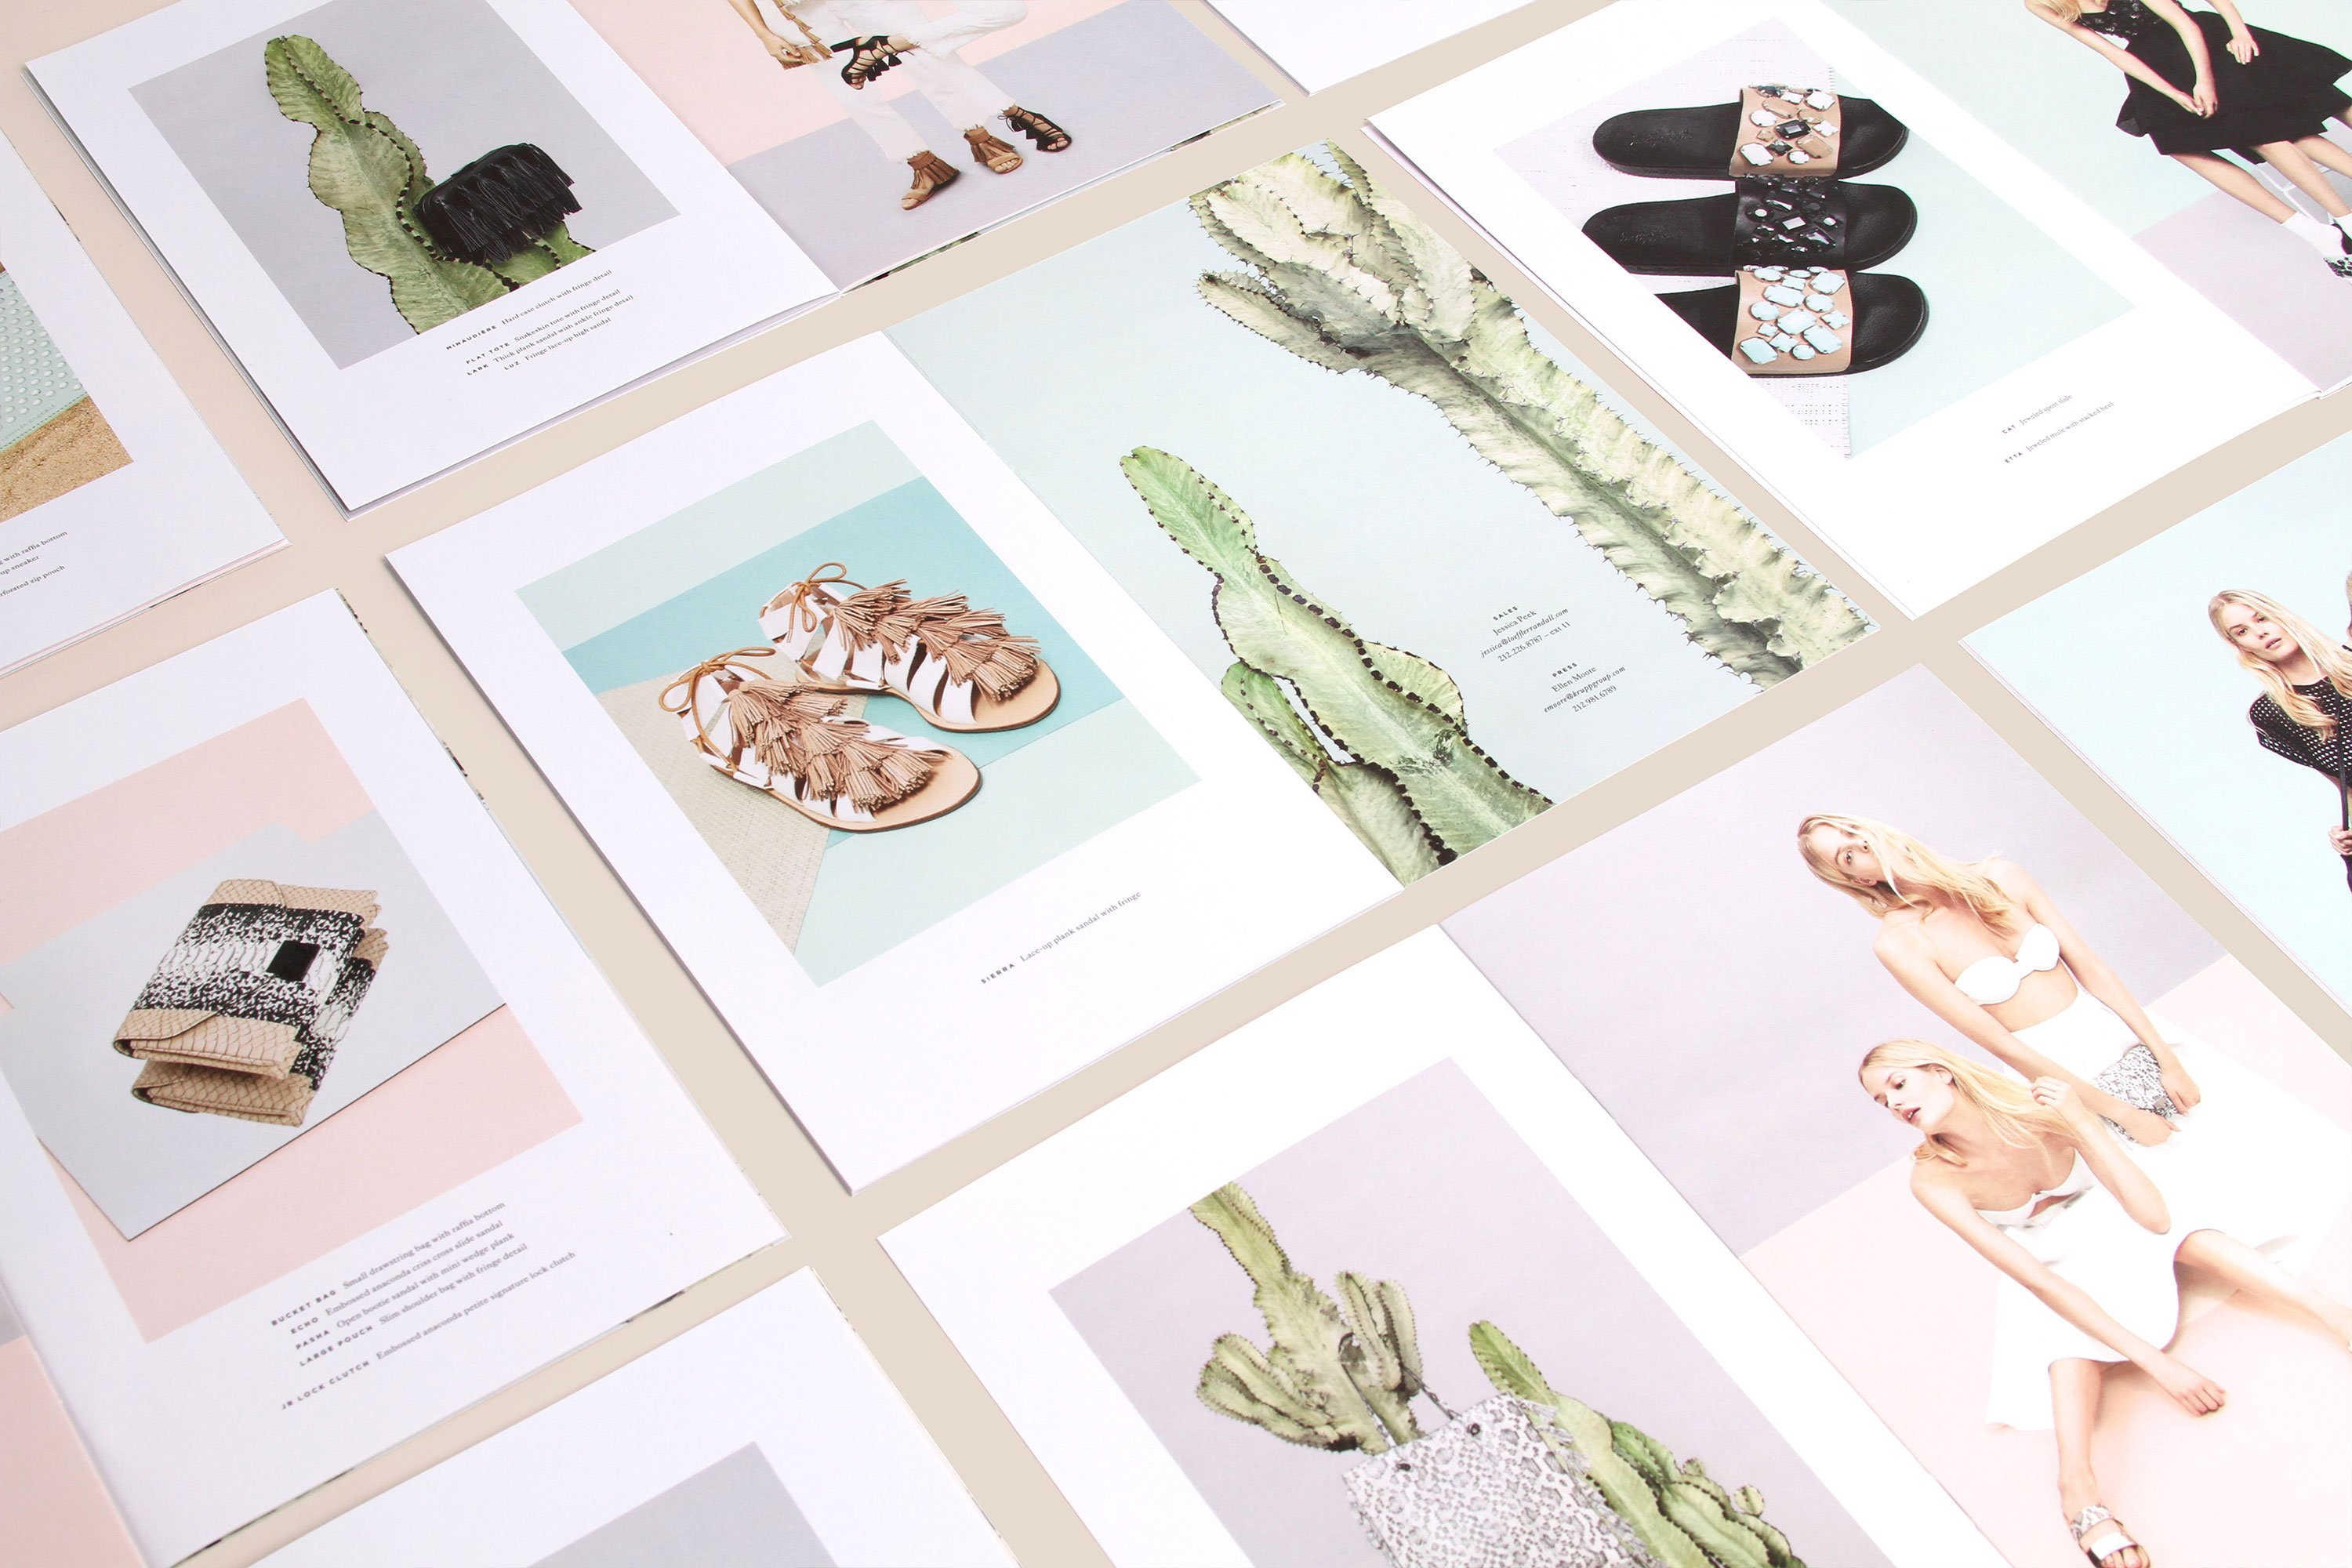 Various Loeffler Randall open spreads featuring sandals and woven bags. Art direction by RoAndCo